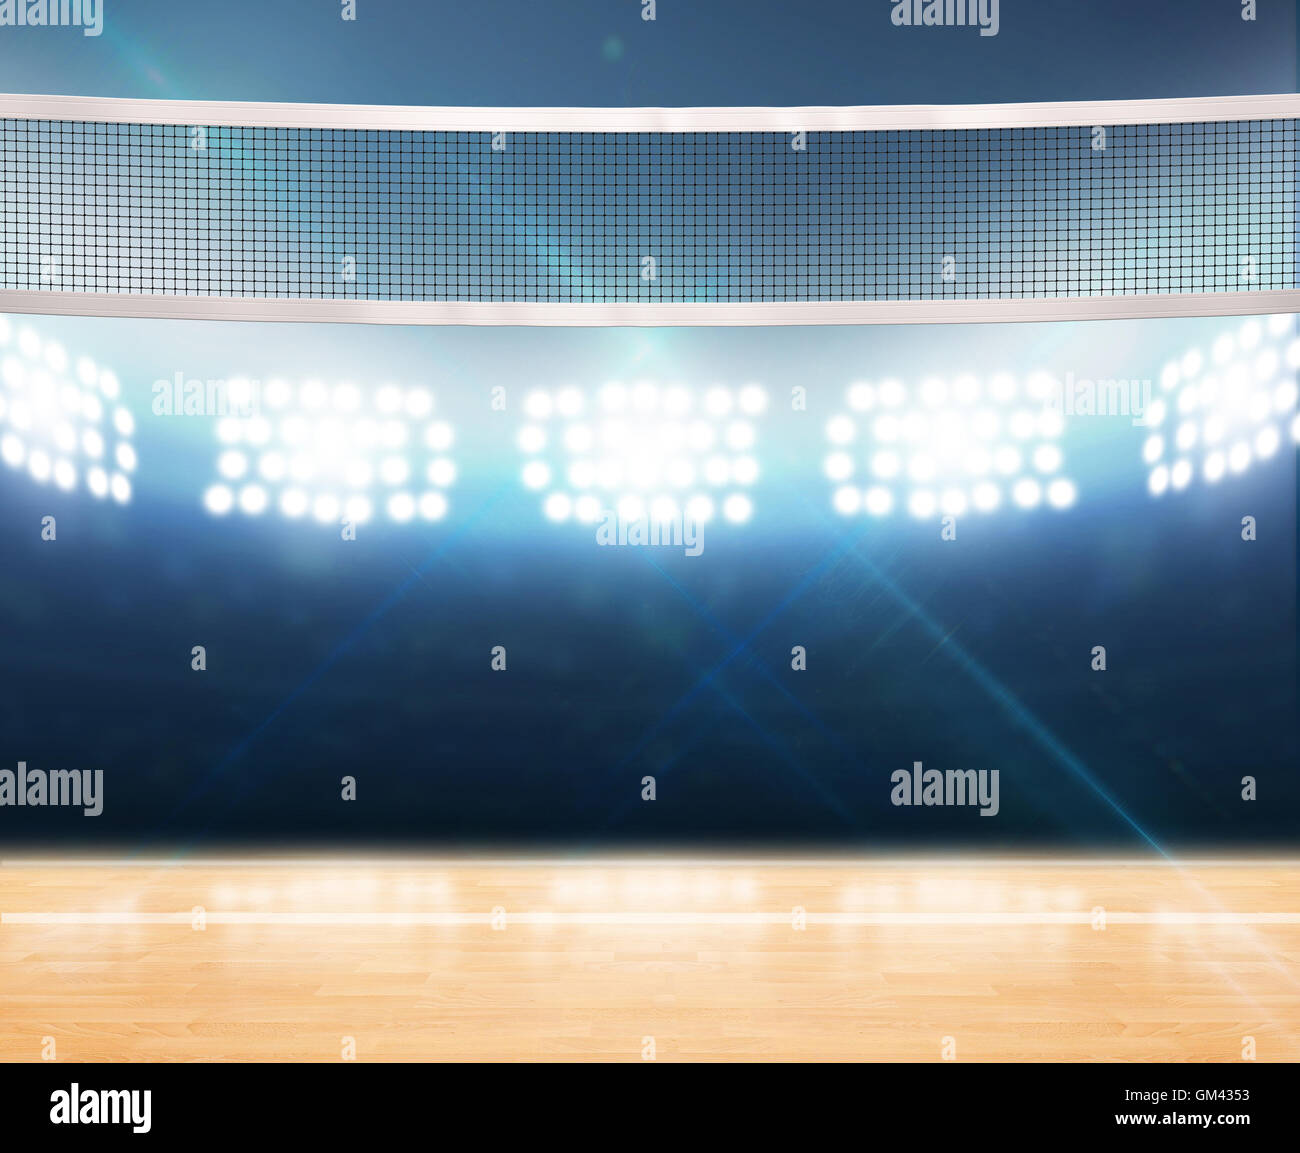 A 3D rendering of an indoor volleyball court with a net on a wooden ...